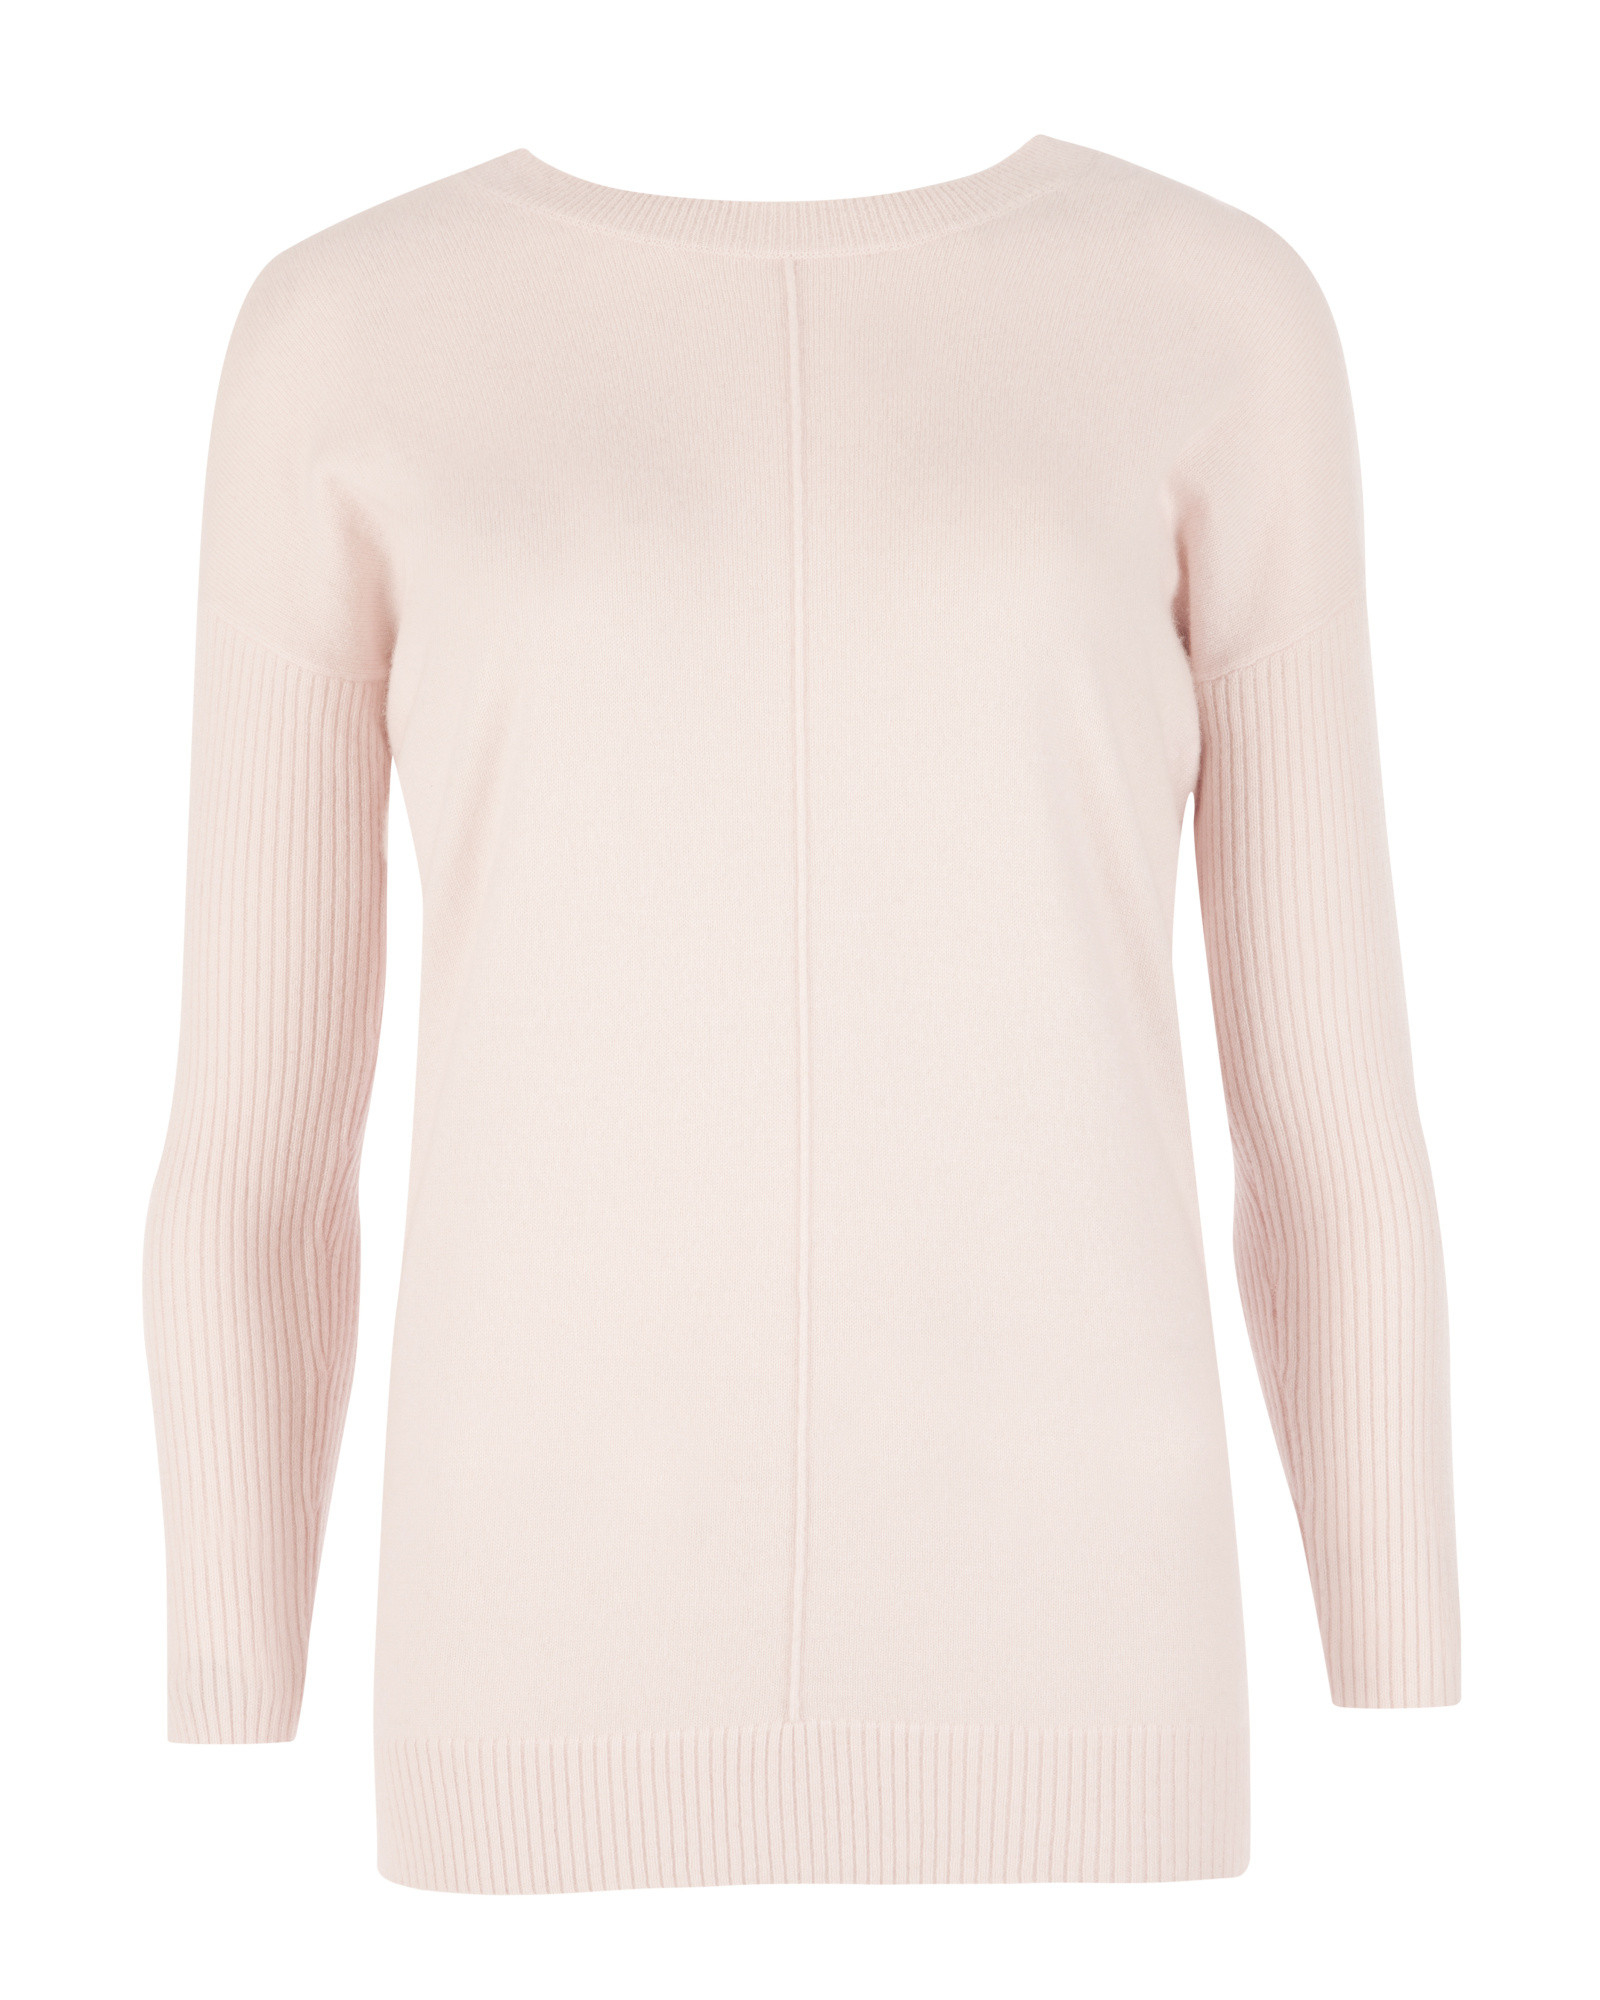 7446d70a49 Lyst - Ted Baker Cashmere Reversible Sweater in Pink